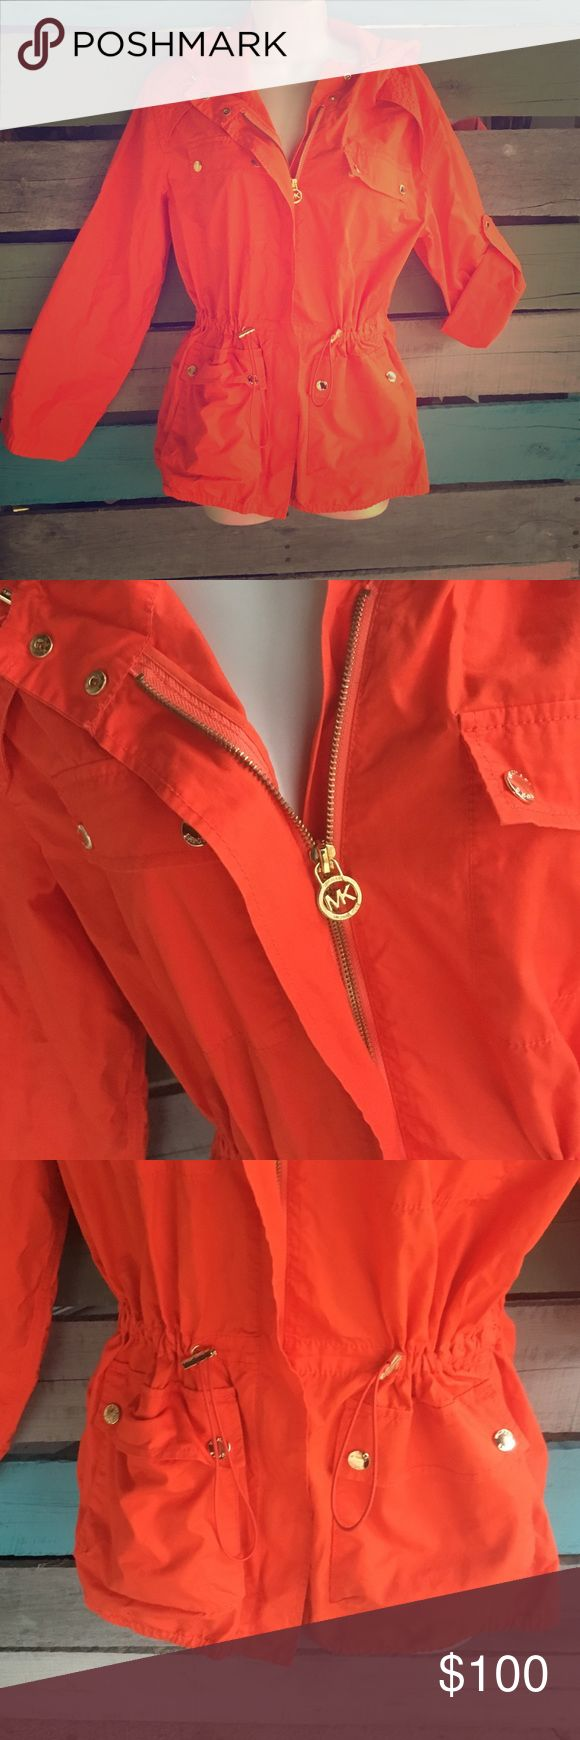 Michael Kors Raincoat Brand new never worn. Features 4. Pockets on the front. A zipper to close the coat. As well as adjust cords on the sides to adjust fit to liking. The can be worn a full length and also 3/4 as shown in picture. The is a button to roll up to the sleeves. Measurements are chest: or 38 inch and length is 26 1/2 inch MICHAEL Michael Kors Jackets & Coats Trench Coats